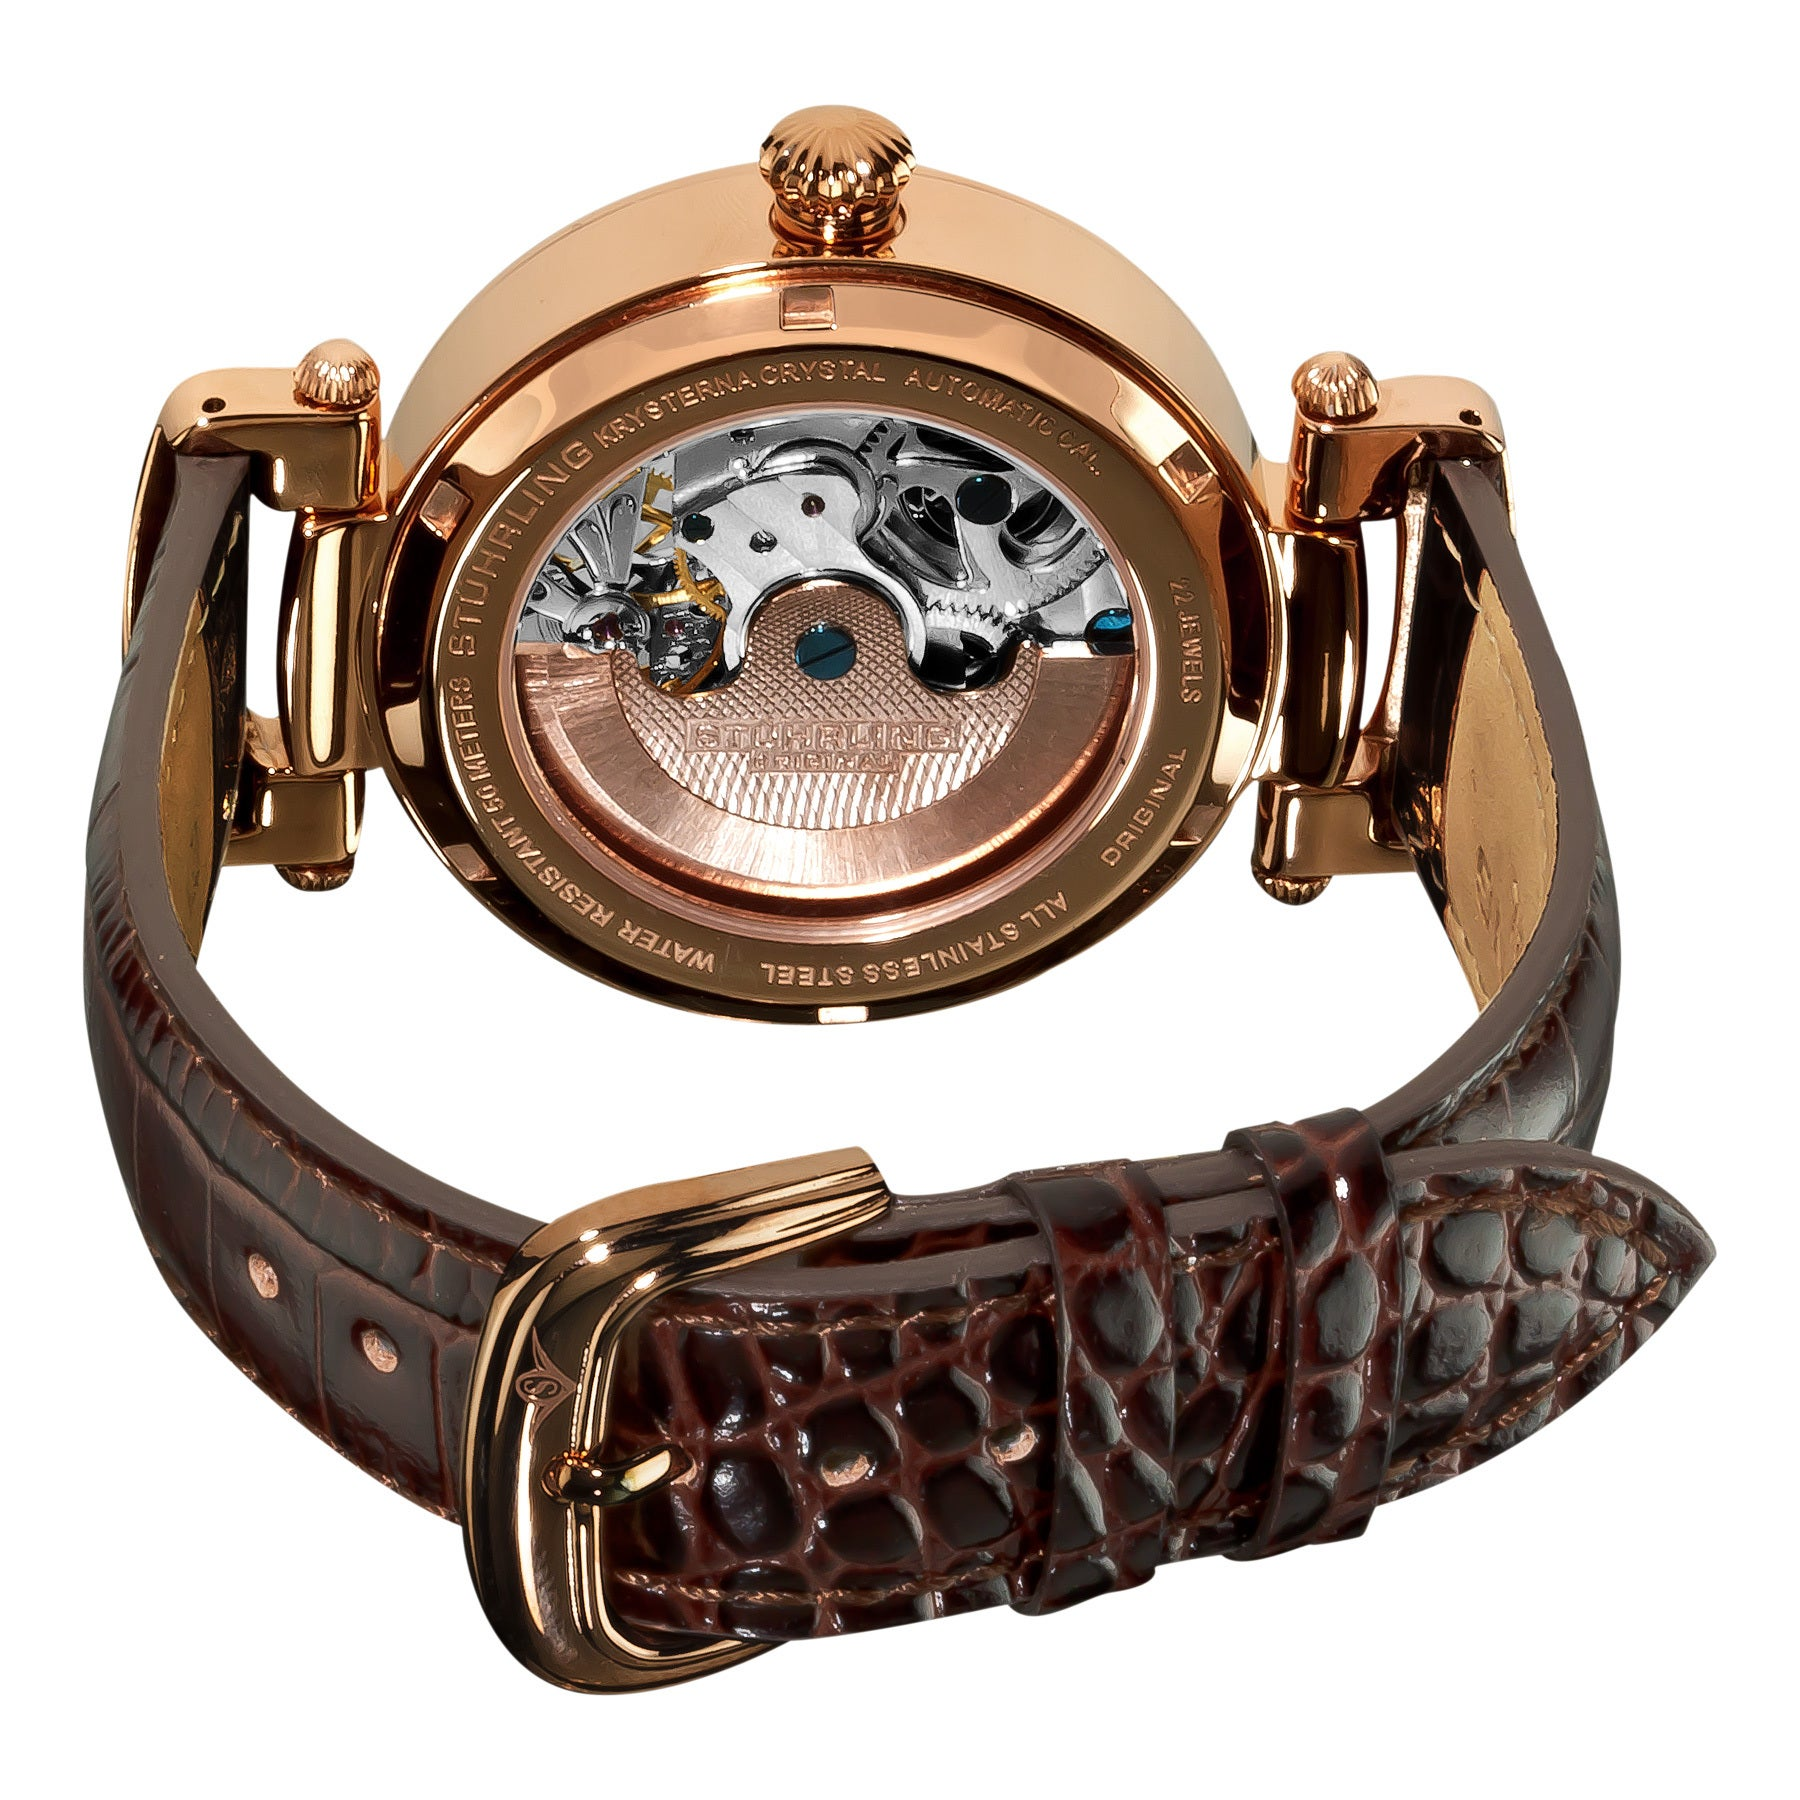 a2d222087 Shop Stuhrling Original Men's Magistrate Rosetone Skeleton Automatic Watch  with Brown leather Strap - multi - Free Shipping Today - Overstock - 6393791